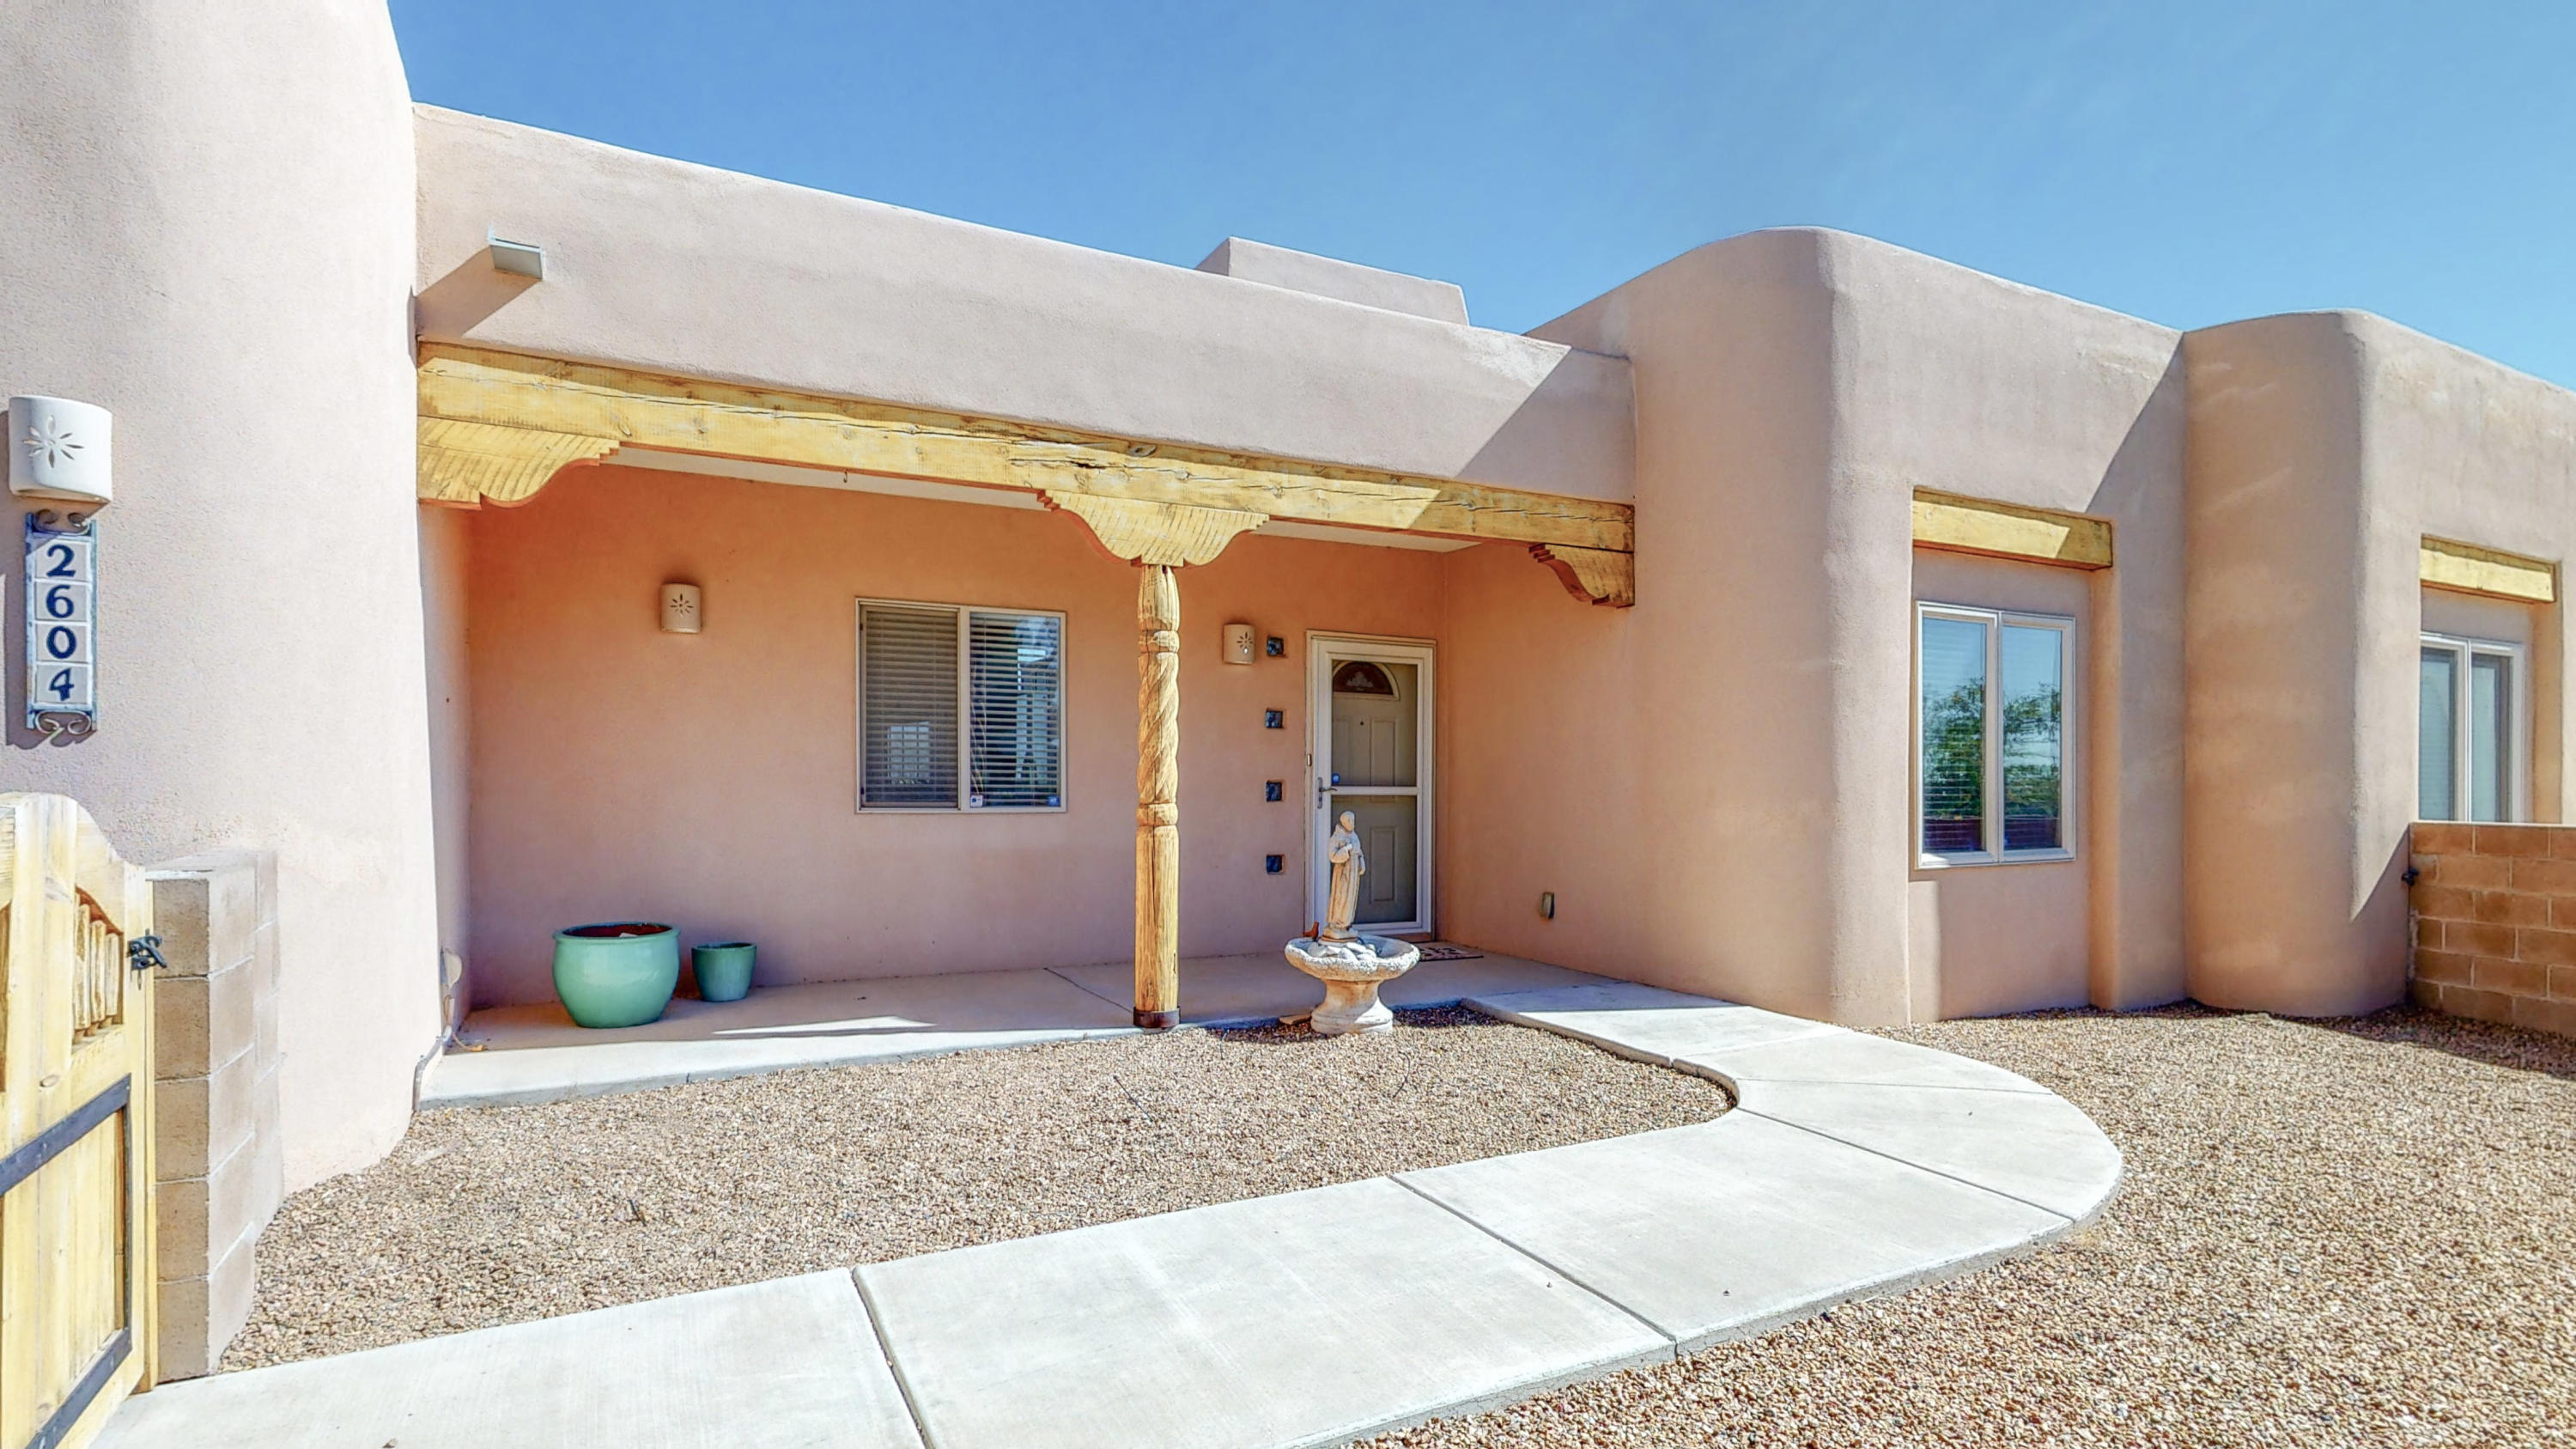 Beautiful custom home on landscaped half acre in Northern Rio Rancho. Lovely courtyard entry greets you.  Tile floors, and exposed beams are featured in the great room with a wall of windows for natural light. Wonderful kitchen complete with breakfast bar, pantry and dining nook.  Spacious master with walk-in closet and extra storage has door to the covered rear portal.  Courtyard wall in the back, too.